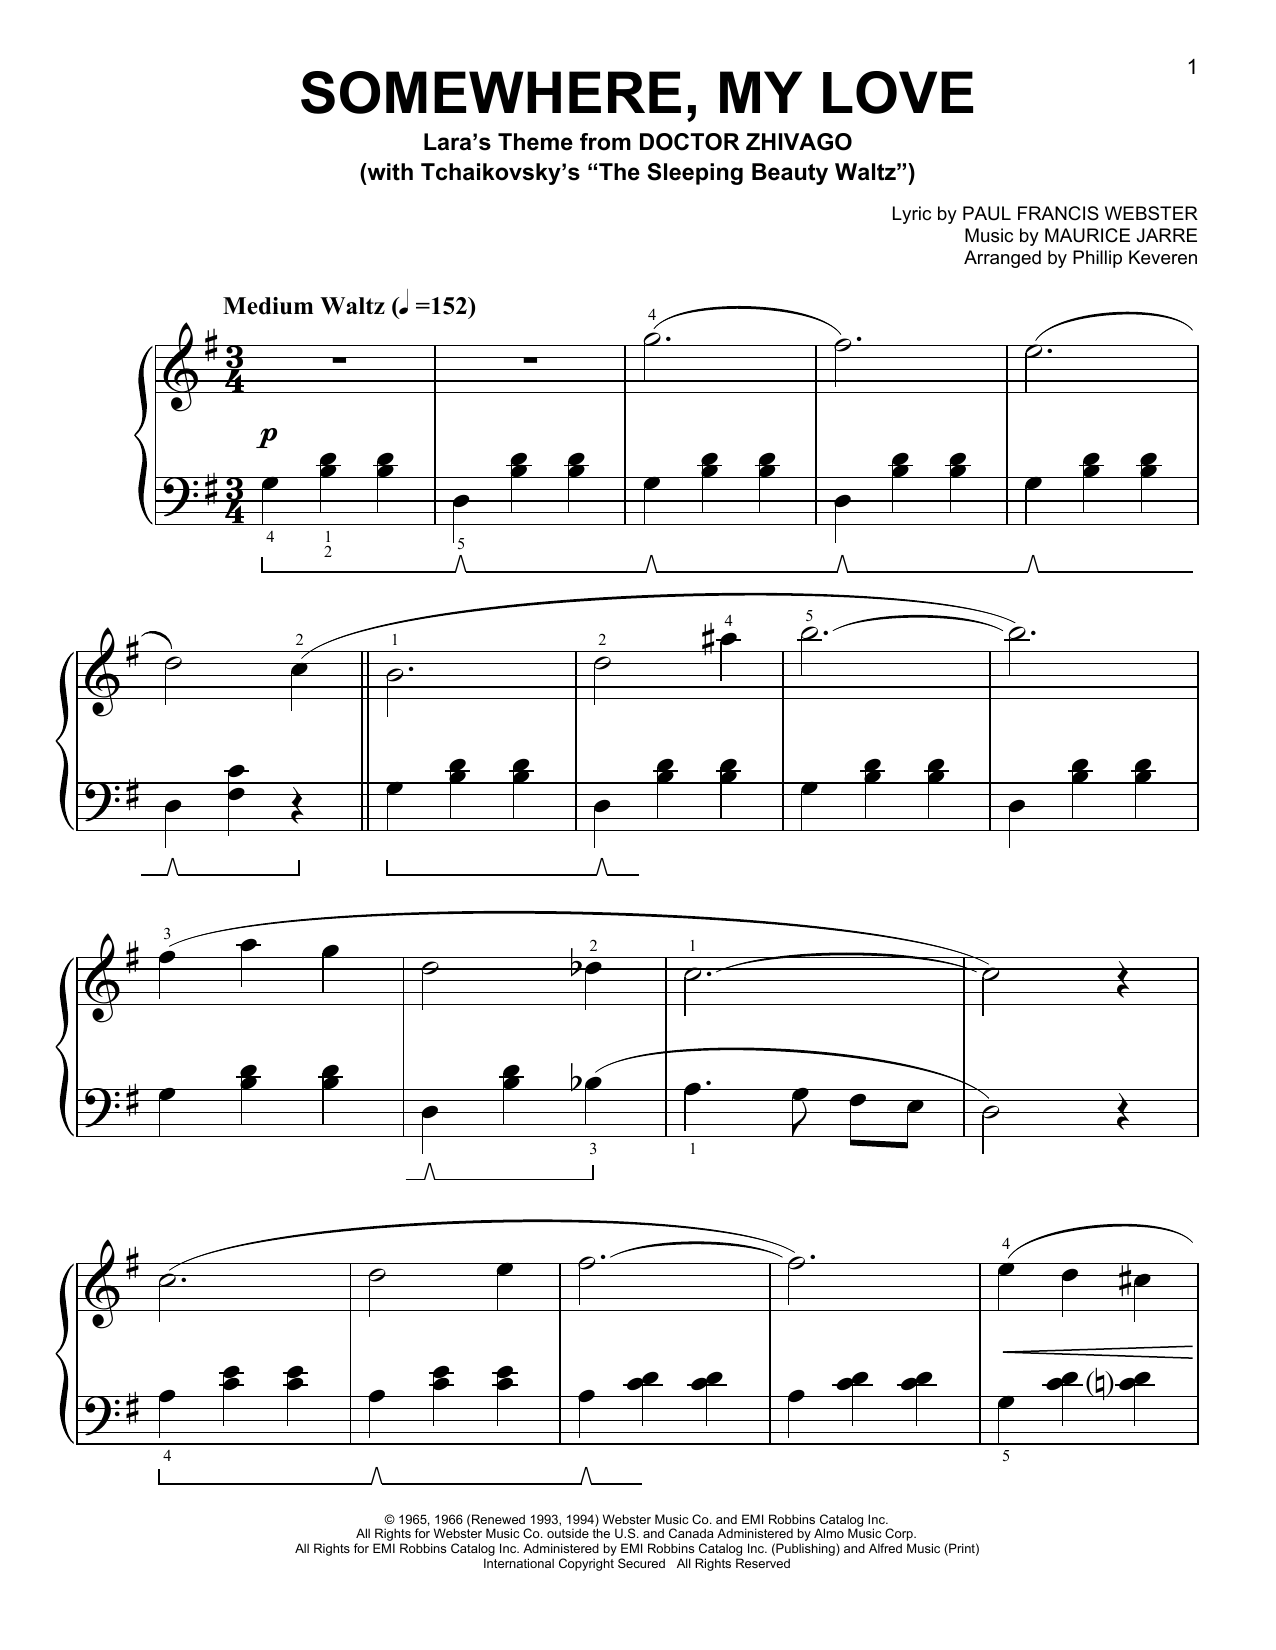 Paul Francis Webster Somewhere, My Love [Classical version] (arr. Phillip Keveren) sheet music notes and chords. Download Printable PDF.